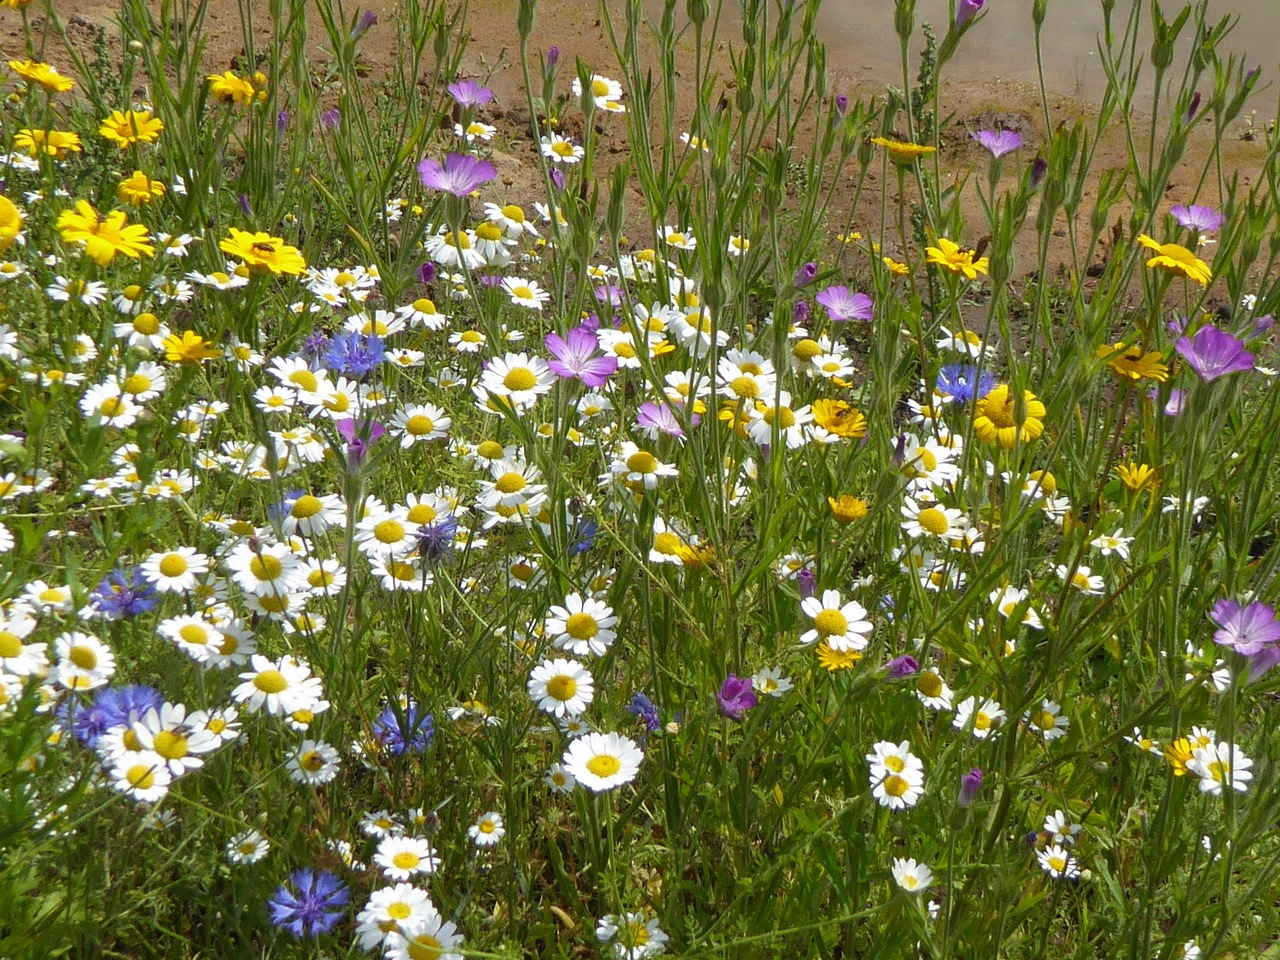 Colourful Wild Flowers at Three Haggs Wood